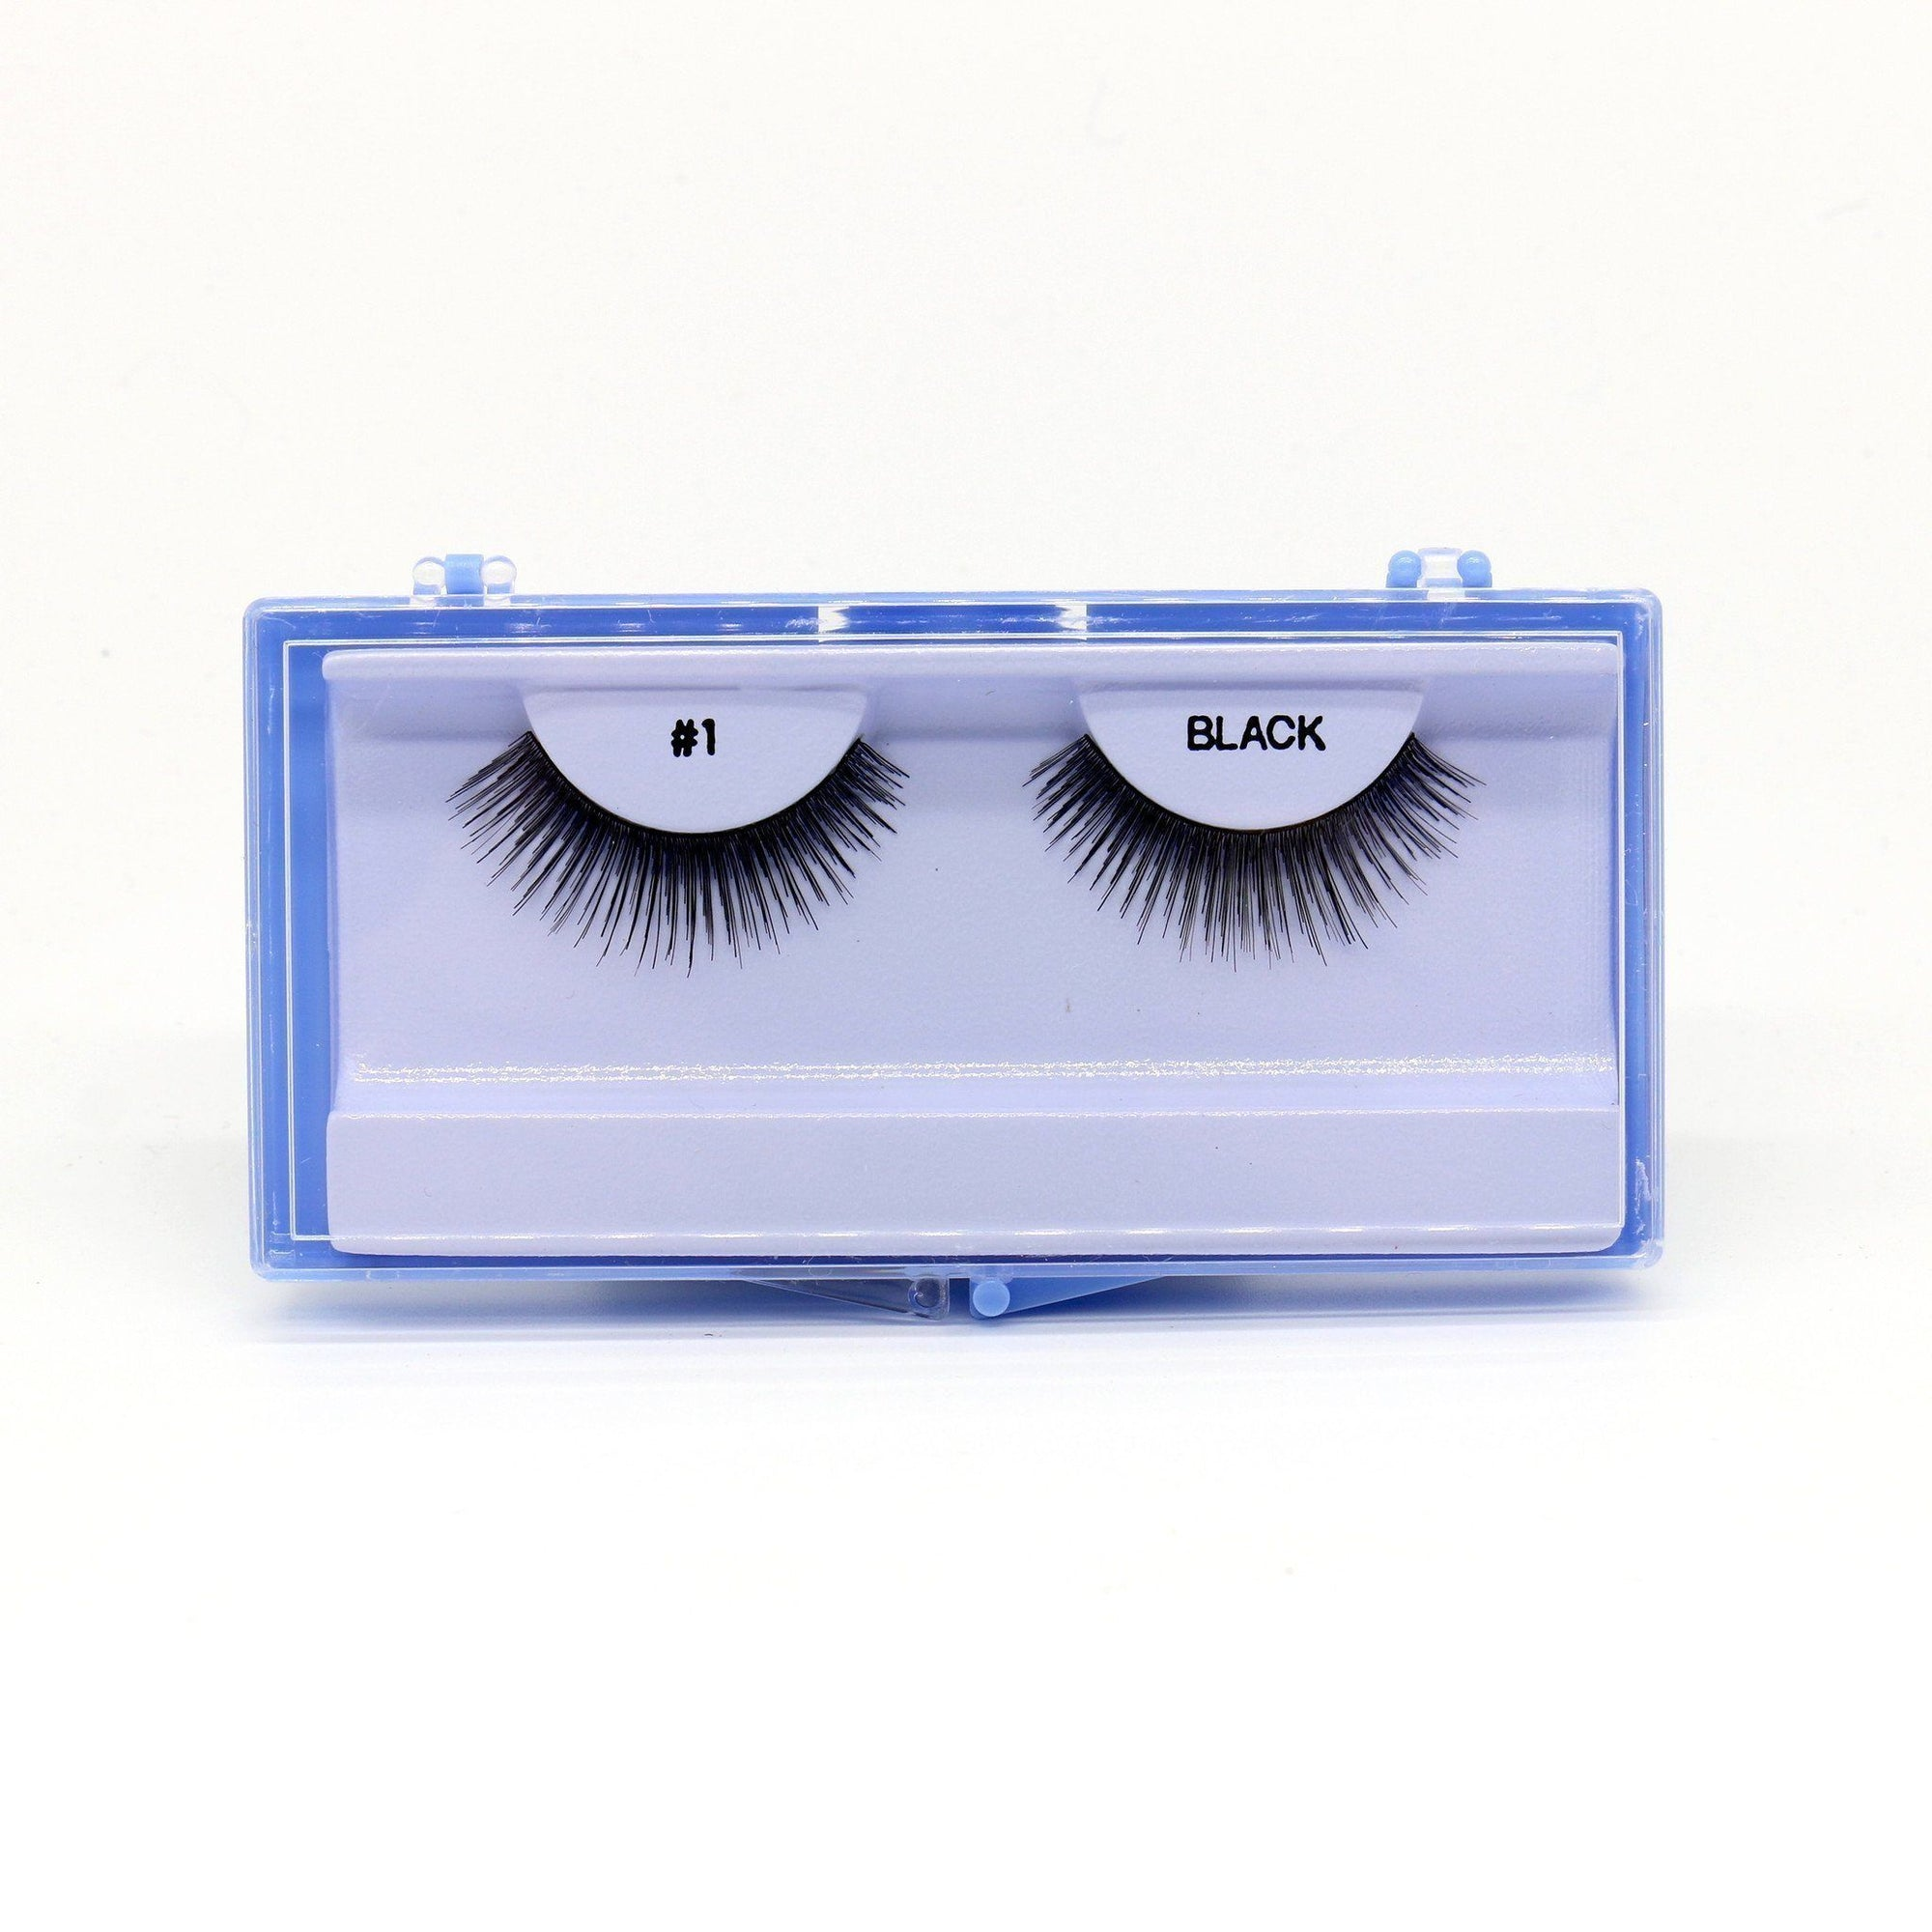 Blue Case Eyelash, #1 (6PC)